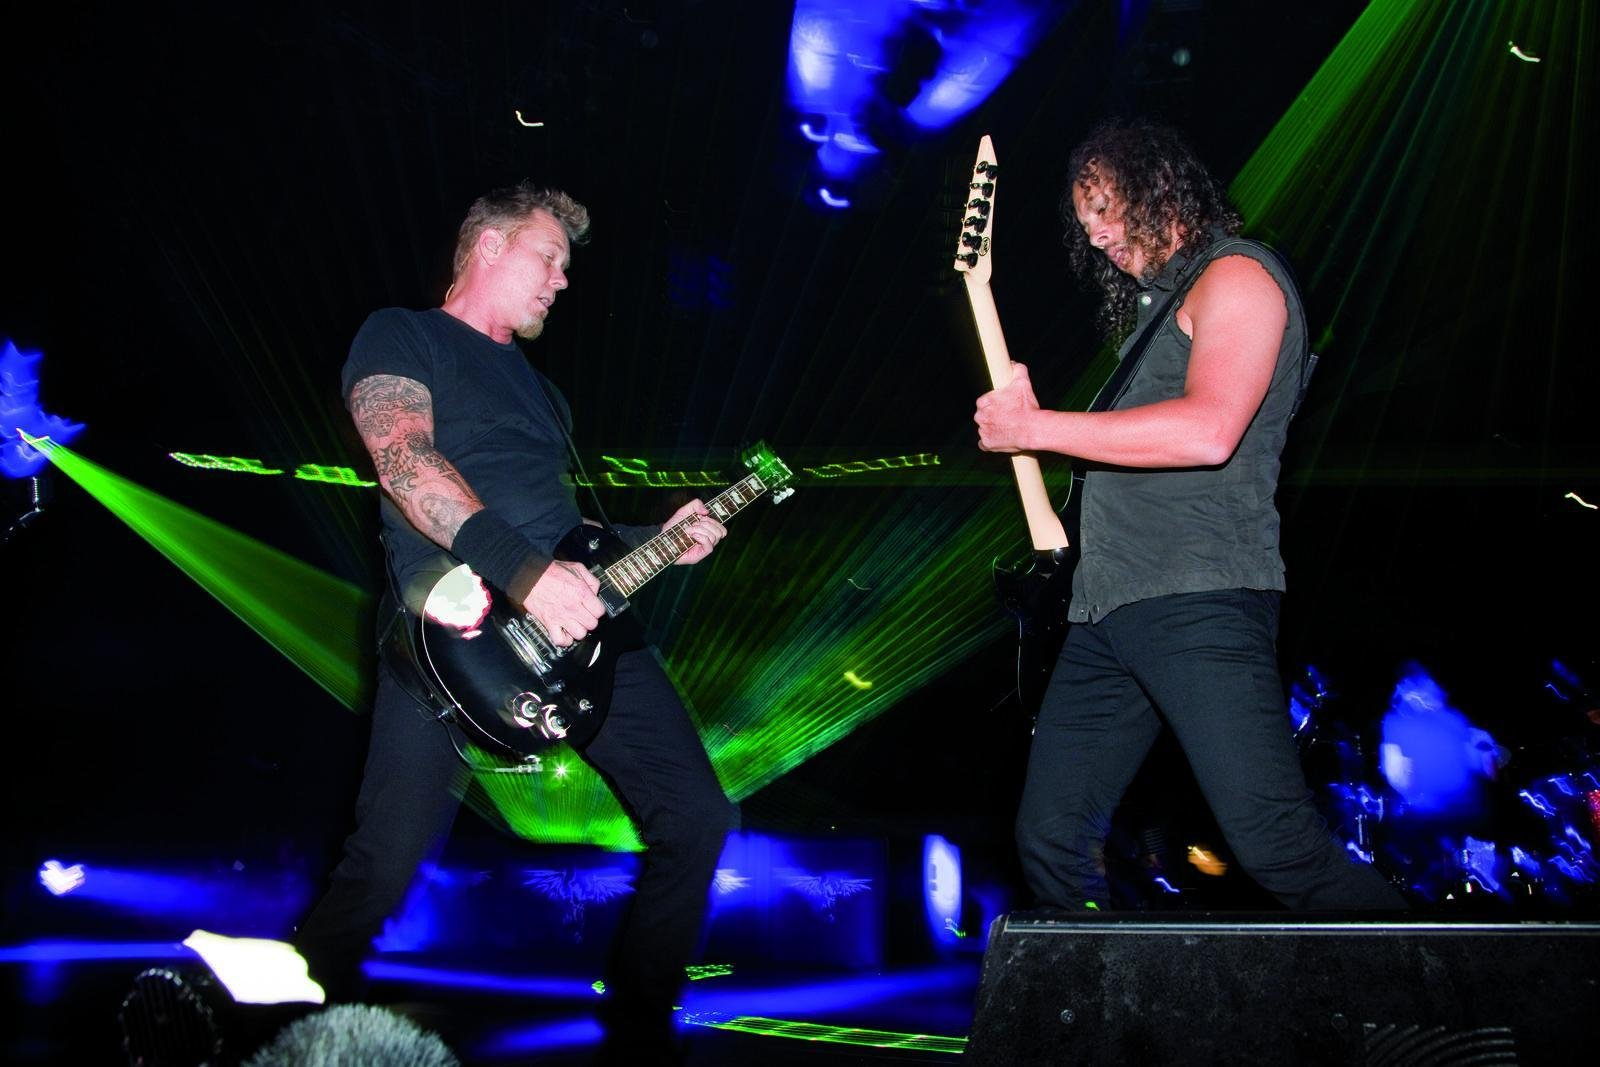 Honda Gives Metallica Fan A Chance To Meet His Heroes ...